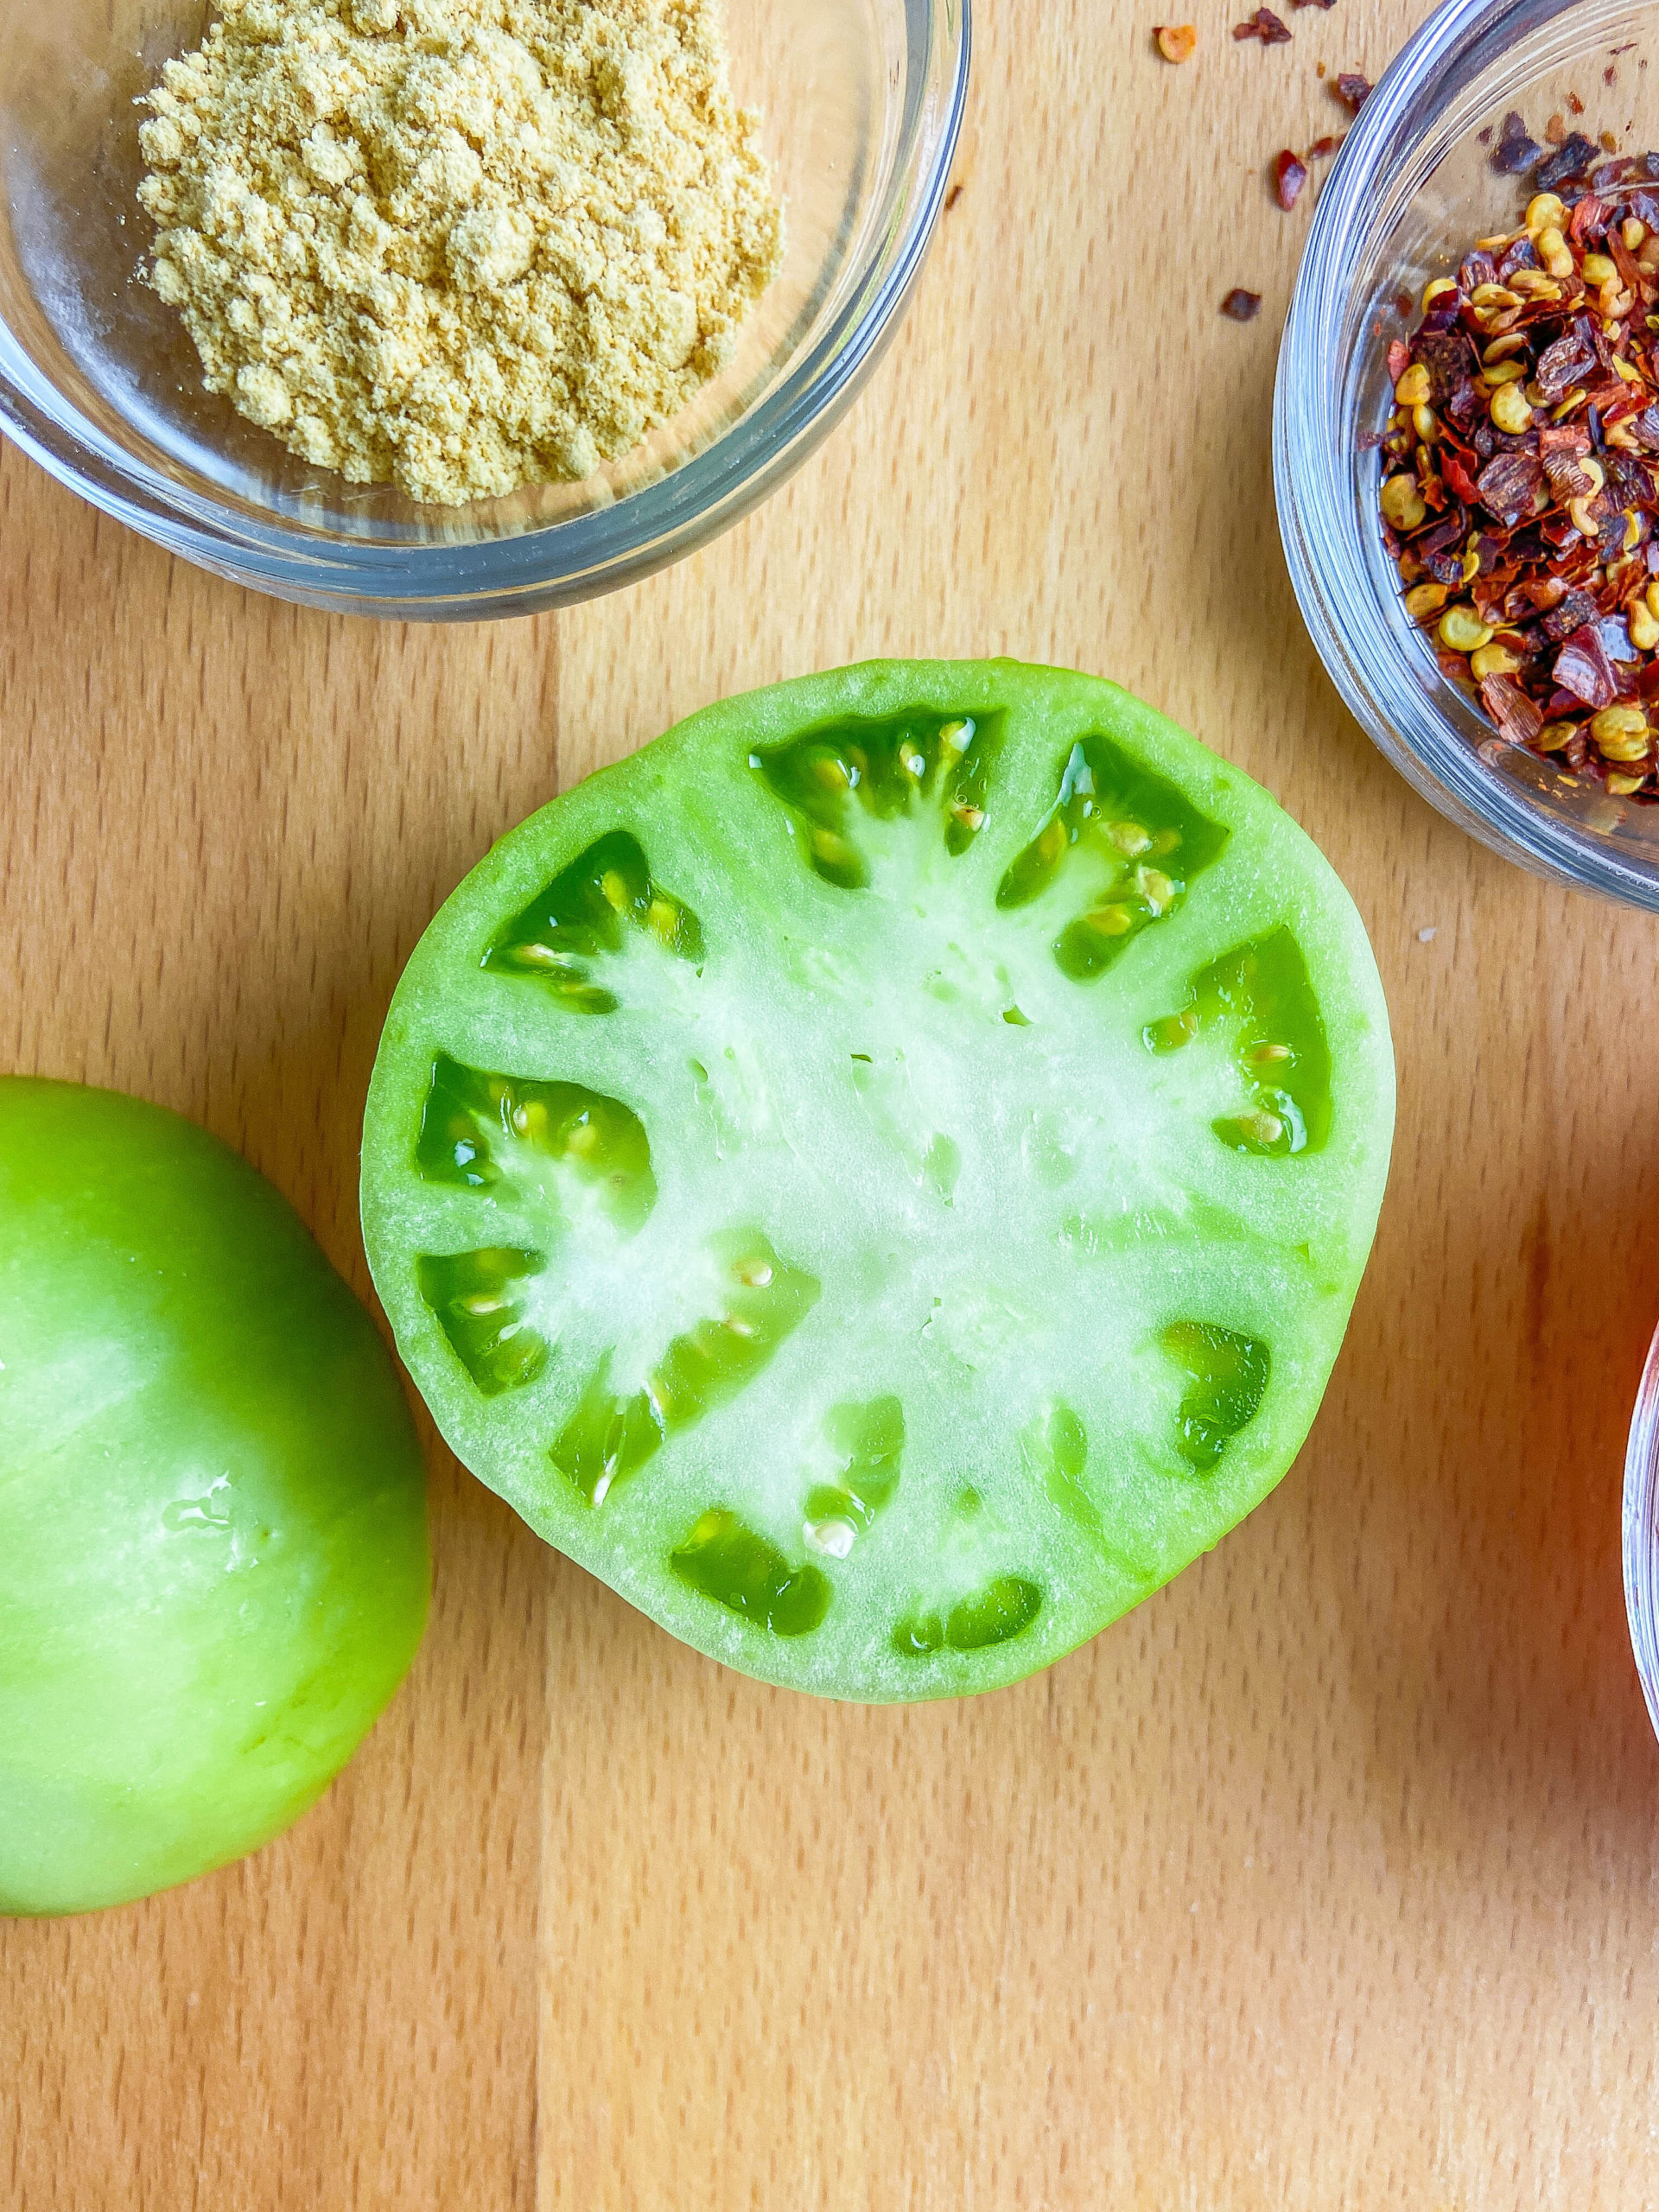 Halved green tomato on a wooden cutting board